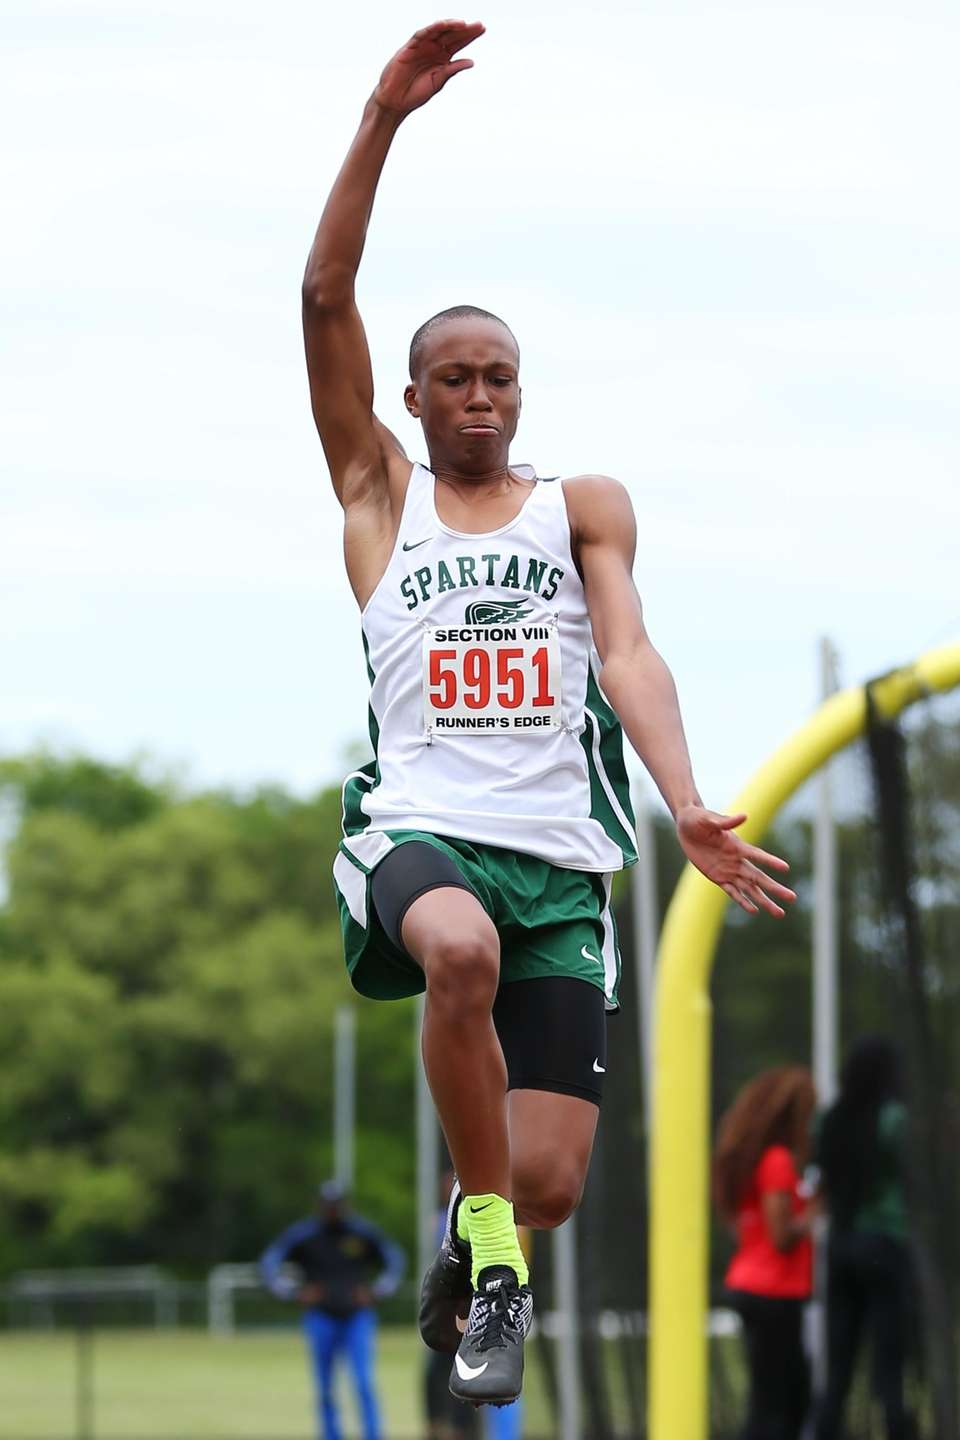 CJ Parris of Valley Stream North competes in